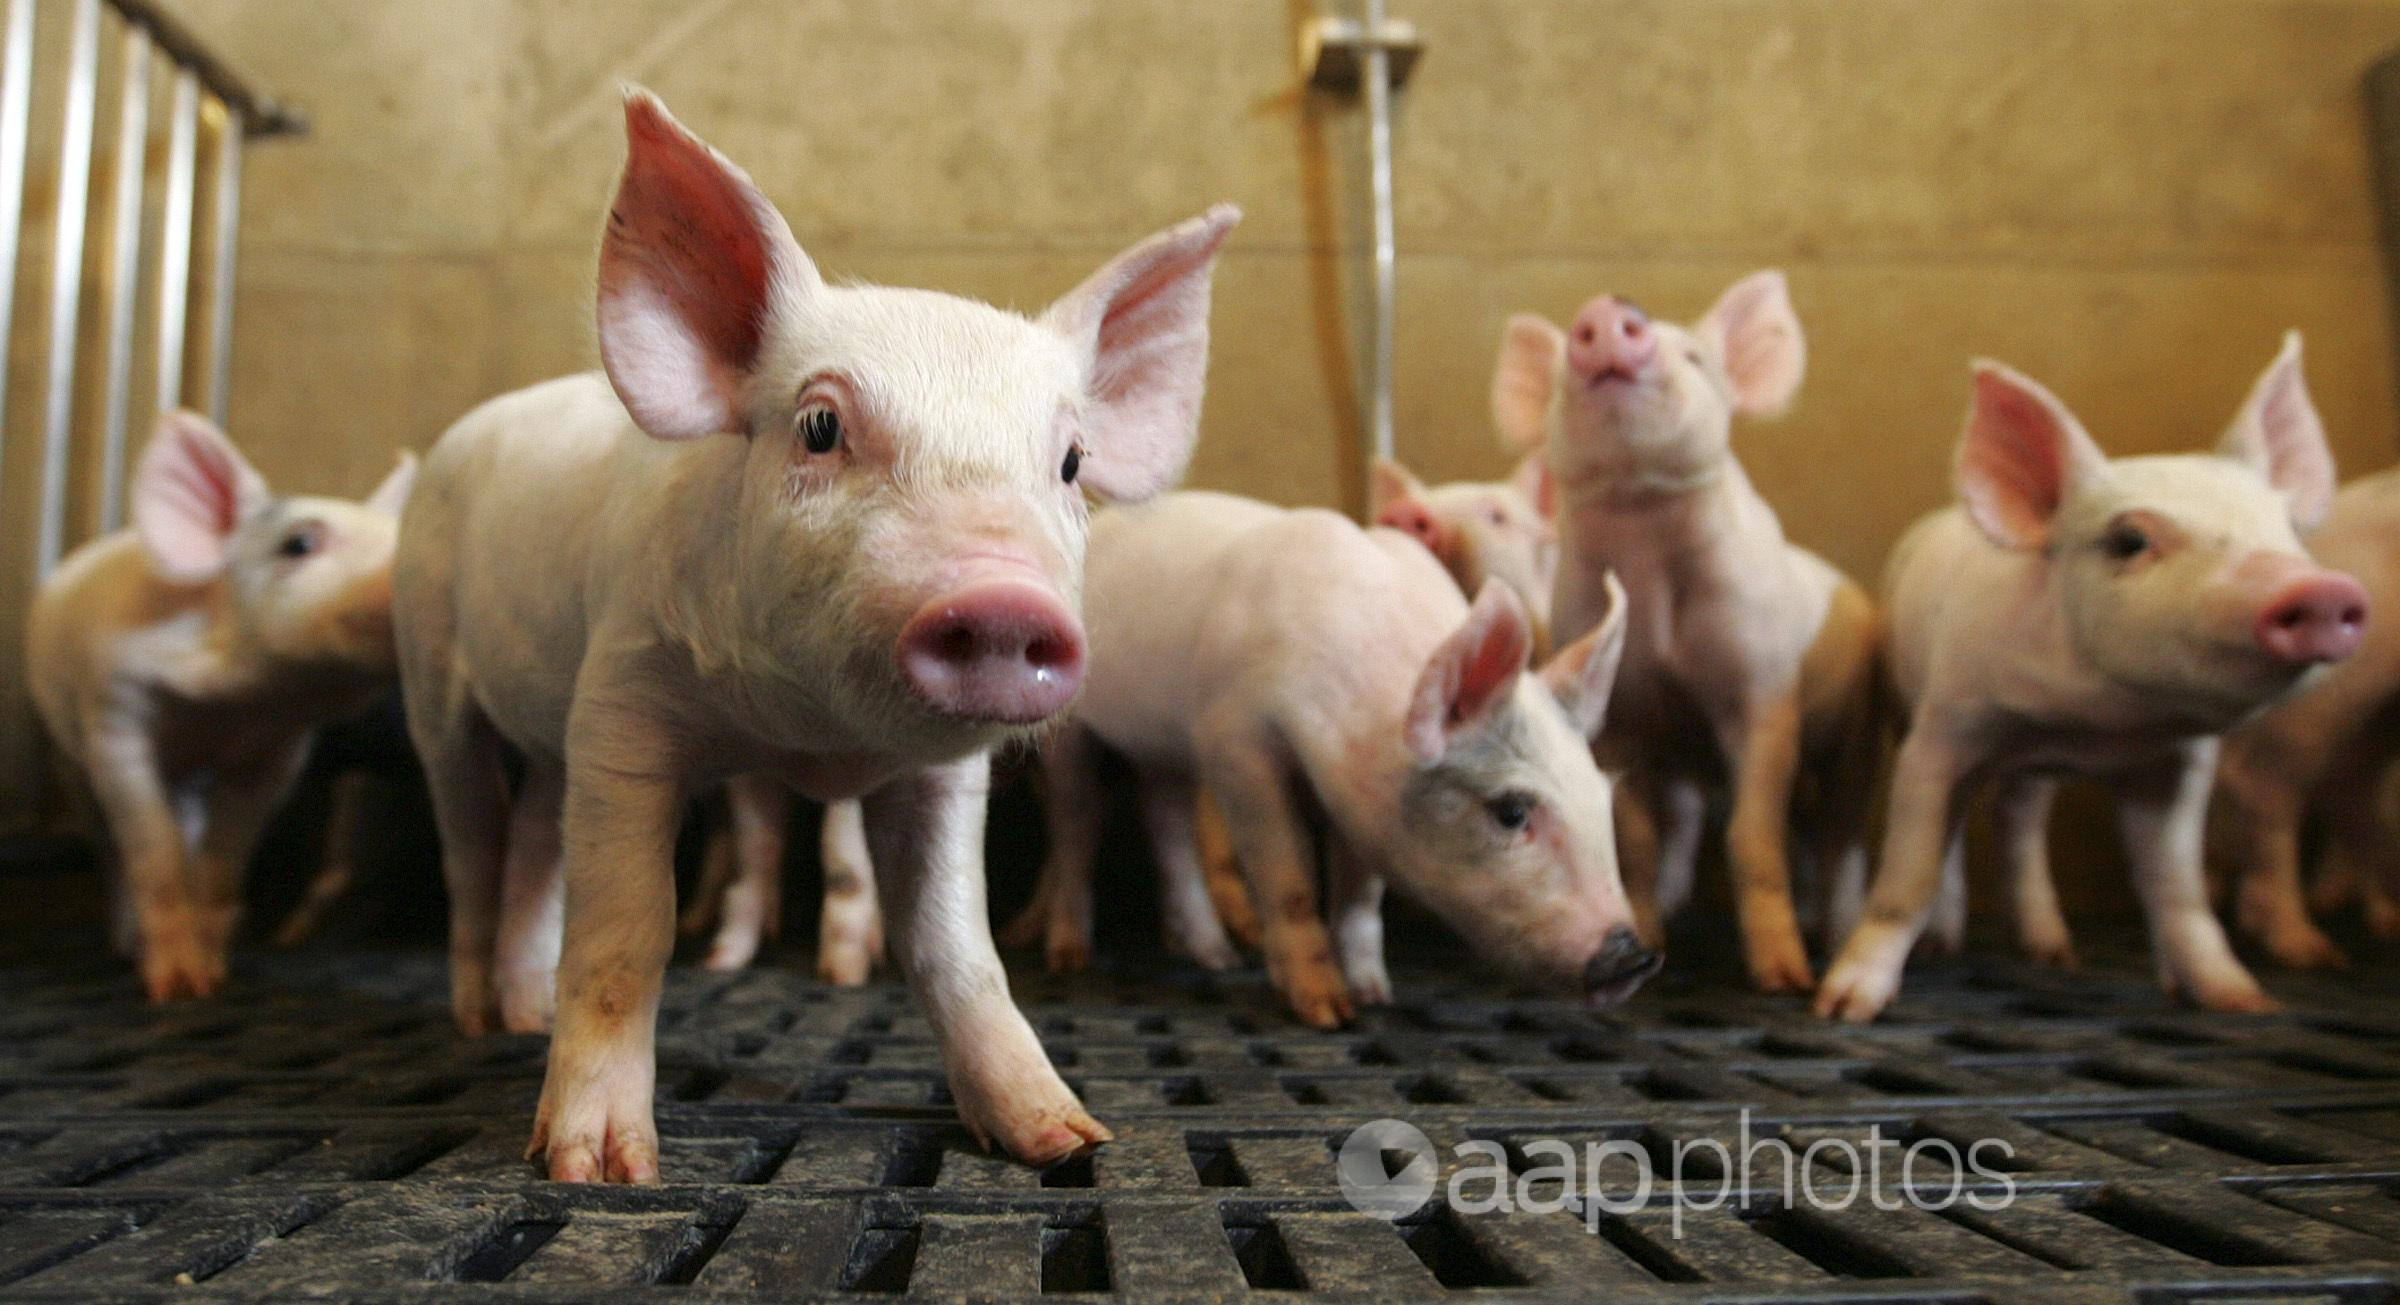 Pigs roam in their pens at a farm in the US.